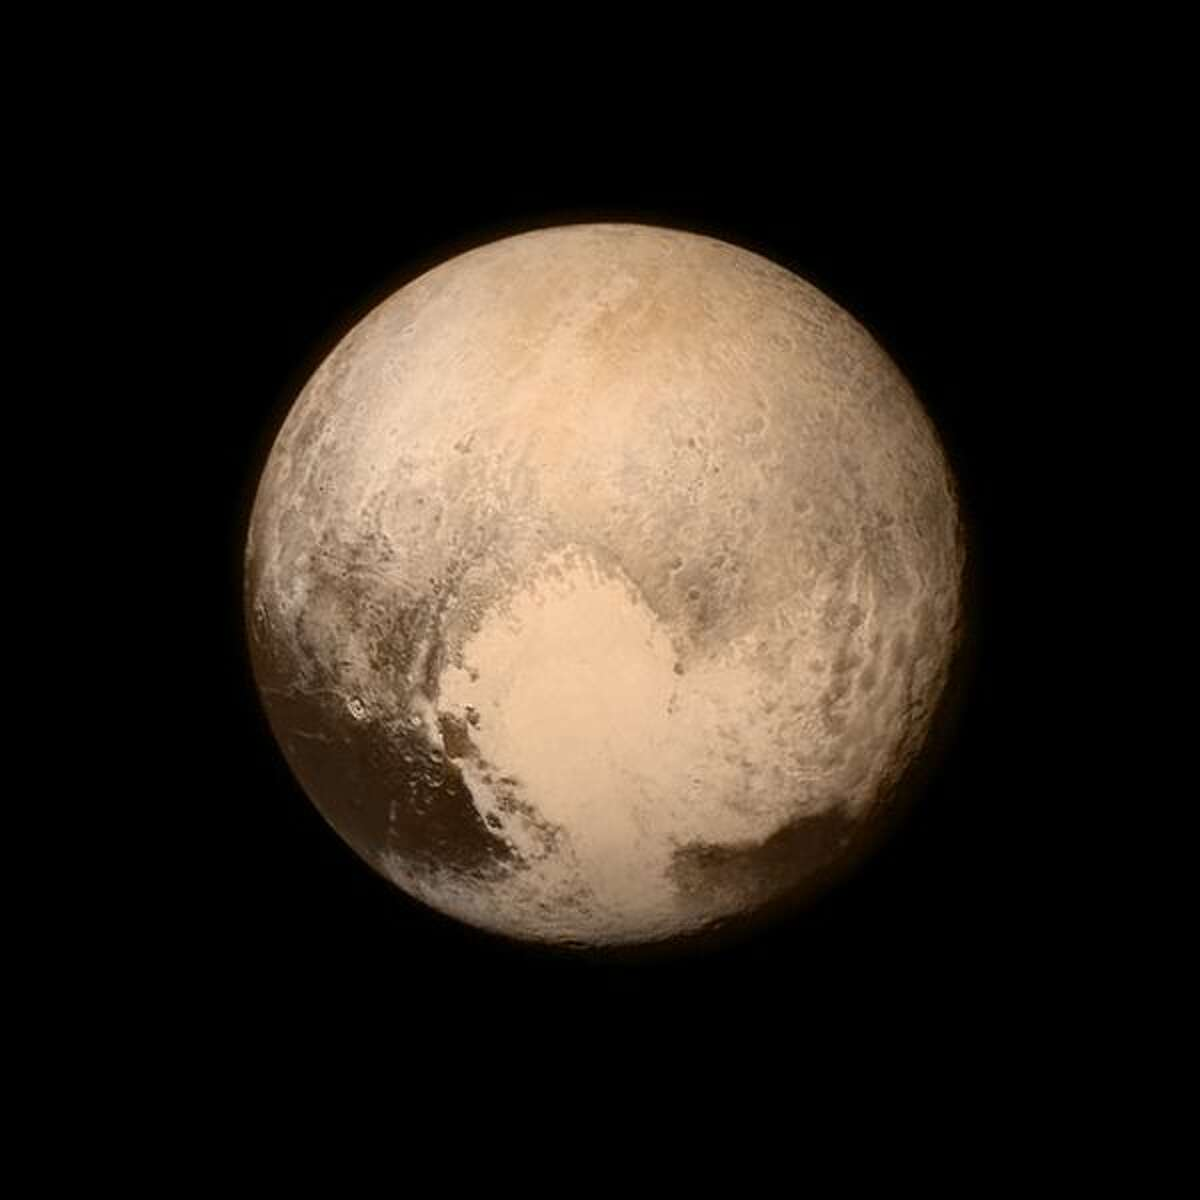 In this photo provided by NASA Monday, Pluto as seen from the New Horizons spacecraft. The United States is now the only nation to visit every single planet in the solar system. Pluto was No. 9 in the lineup when New Horizons departed Cape Canaveral, Fla, on Jan. 19, 2006